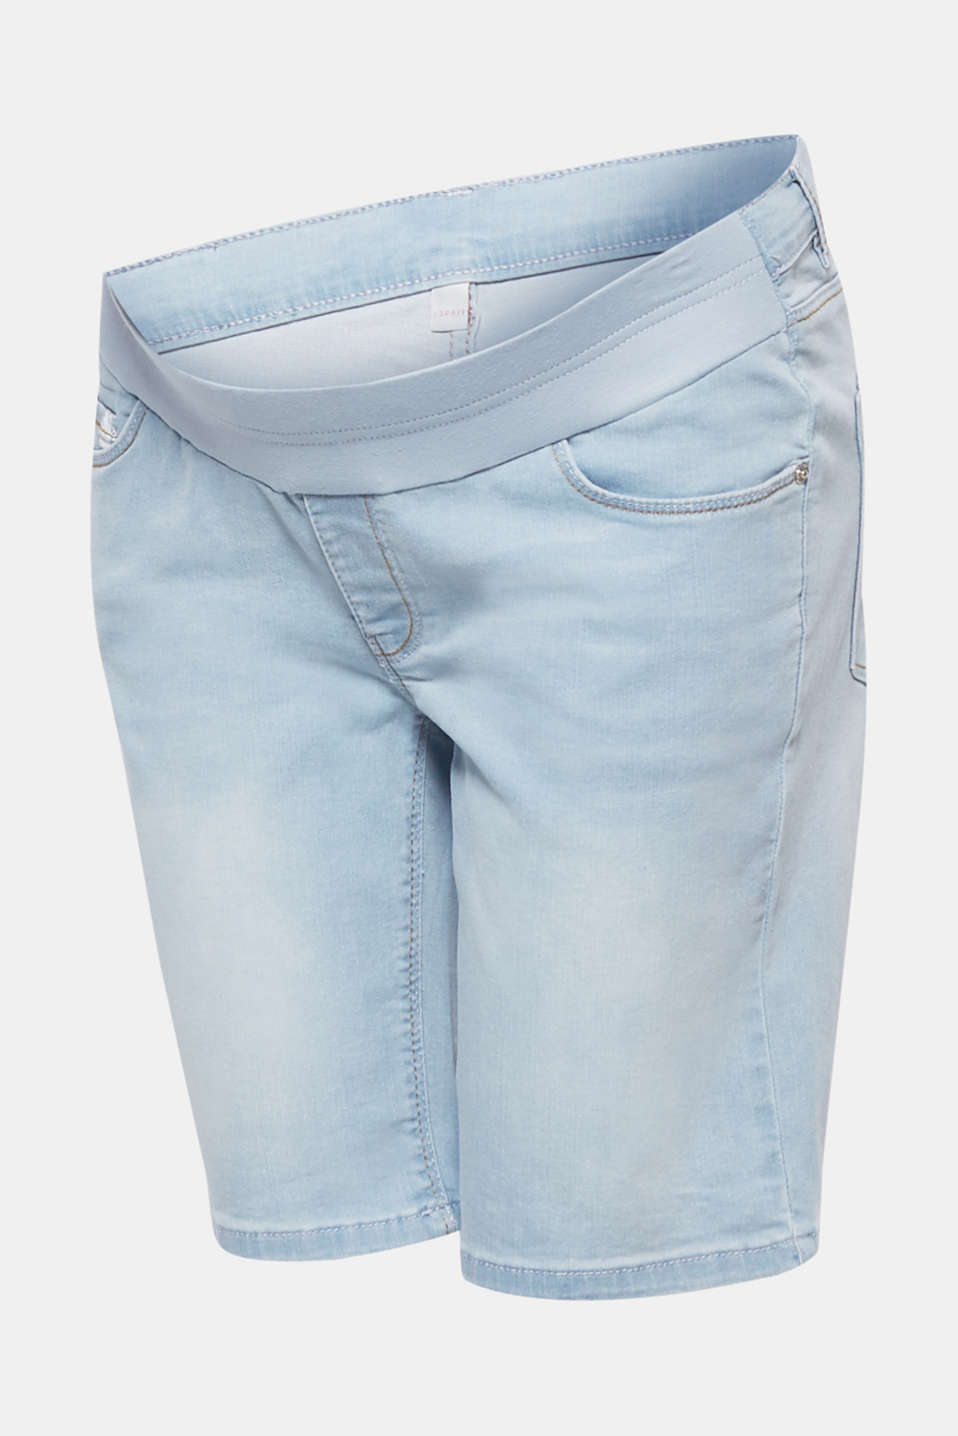 Stretch denim Bermudas with an under-bump waistband, LCLIGHTWASH, detail image number 7